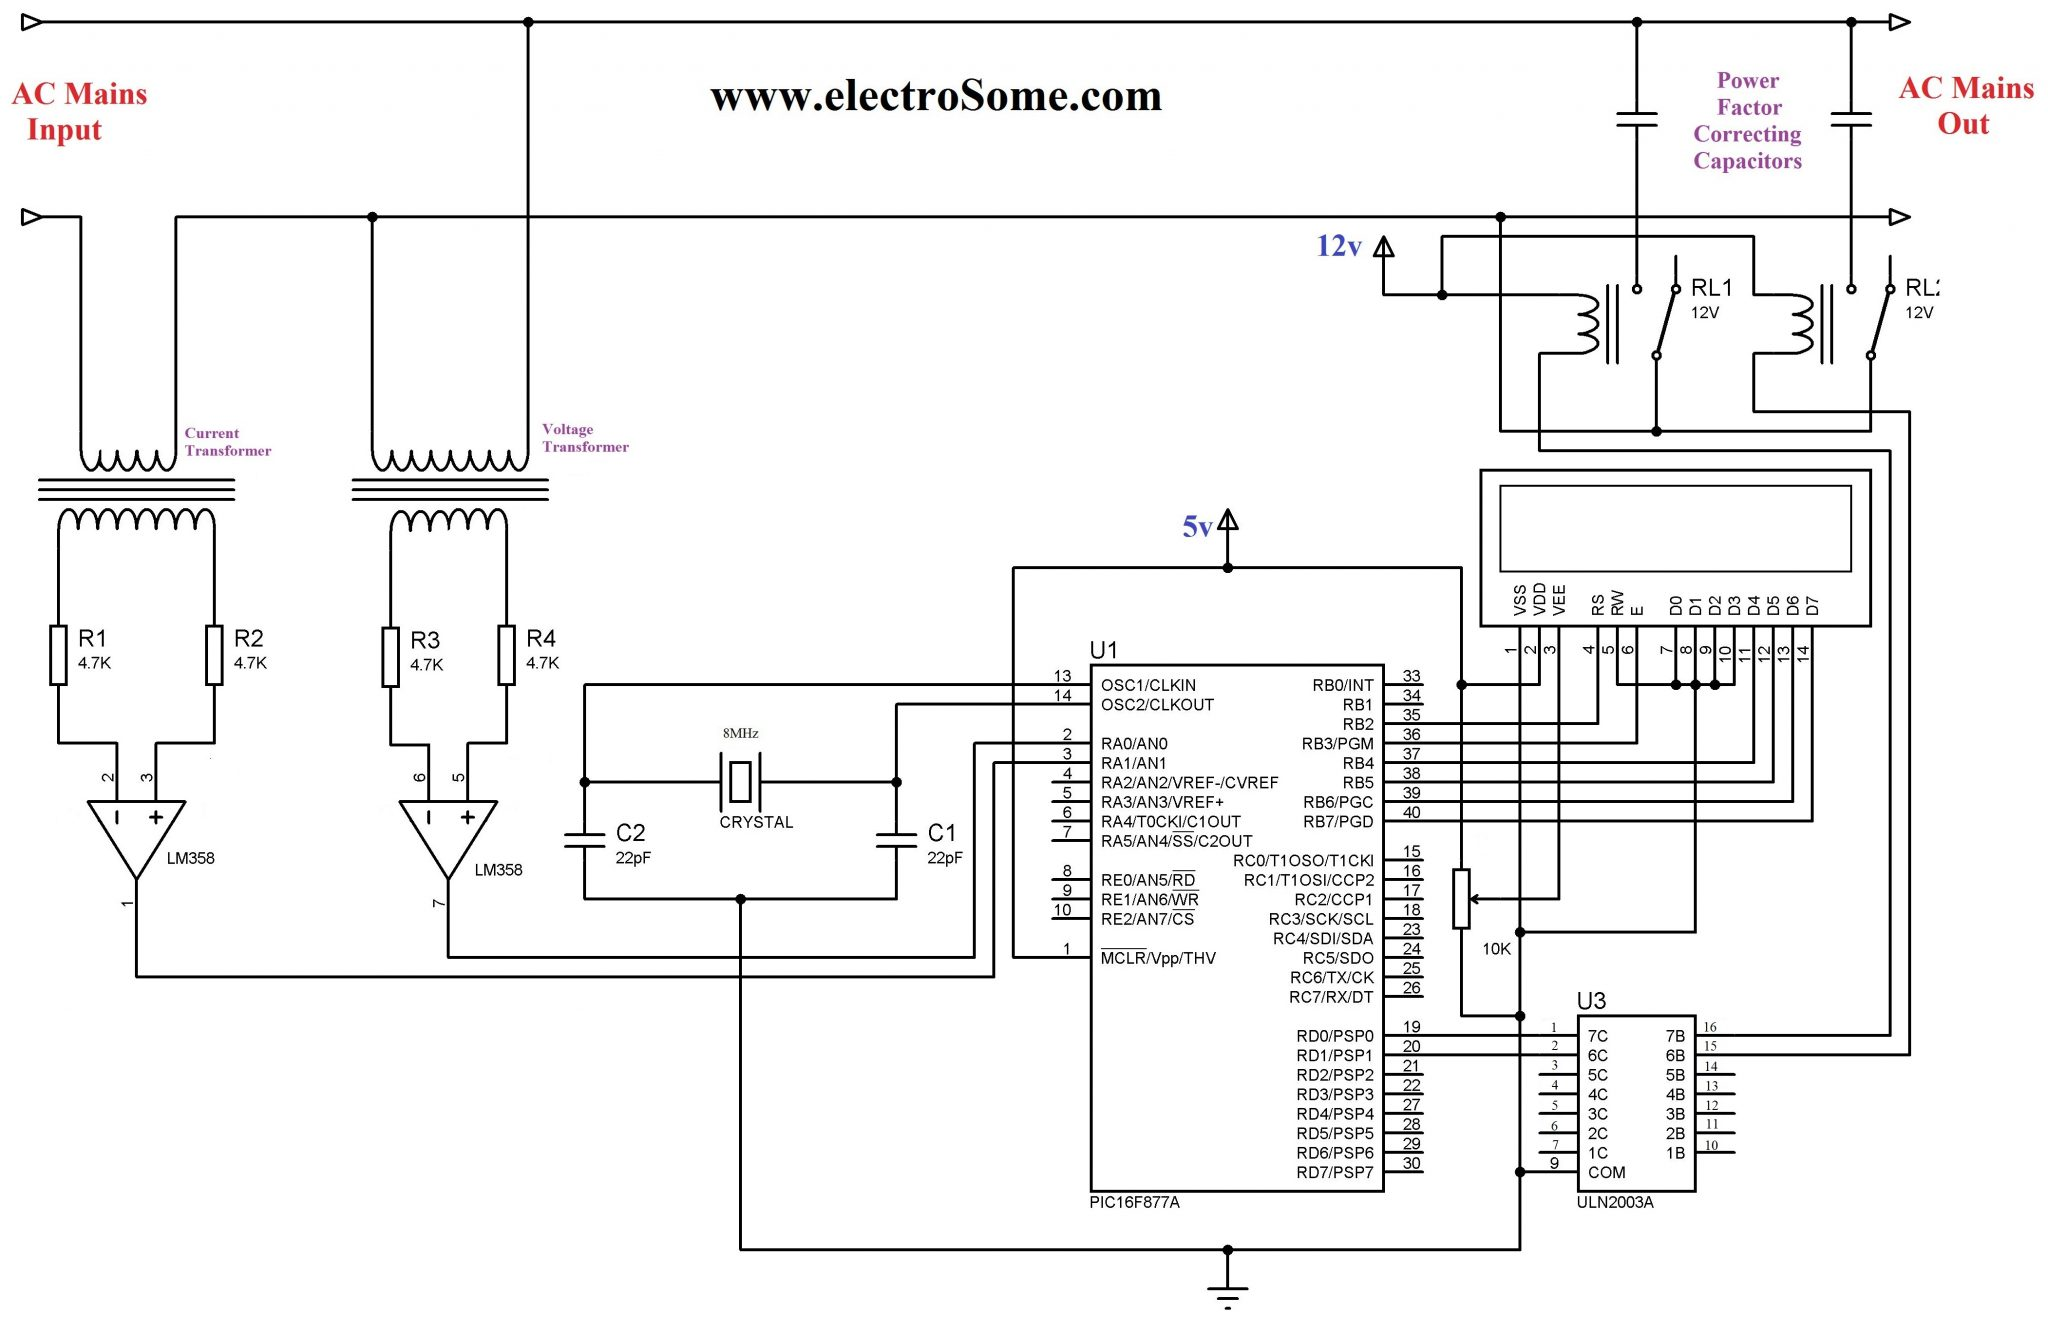 Automatic Power Factor Controller Using Microcontroller on ups electrical diagram